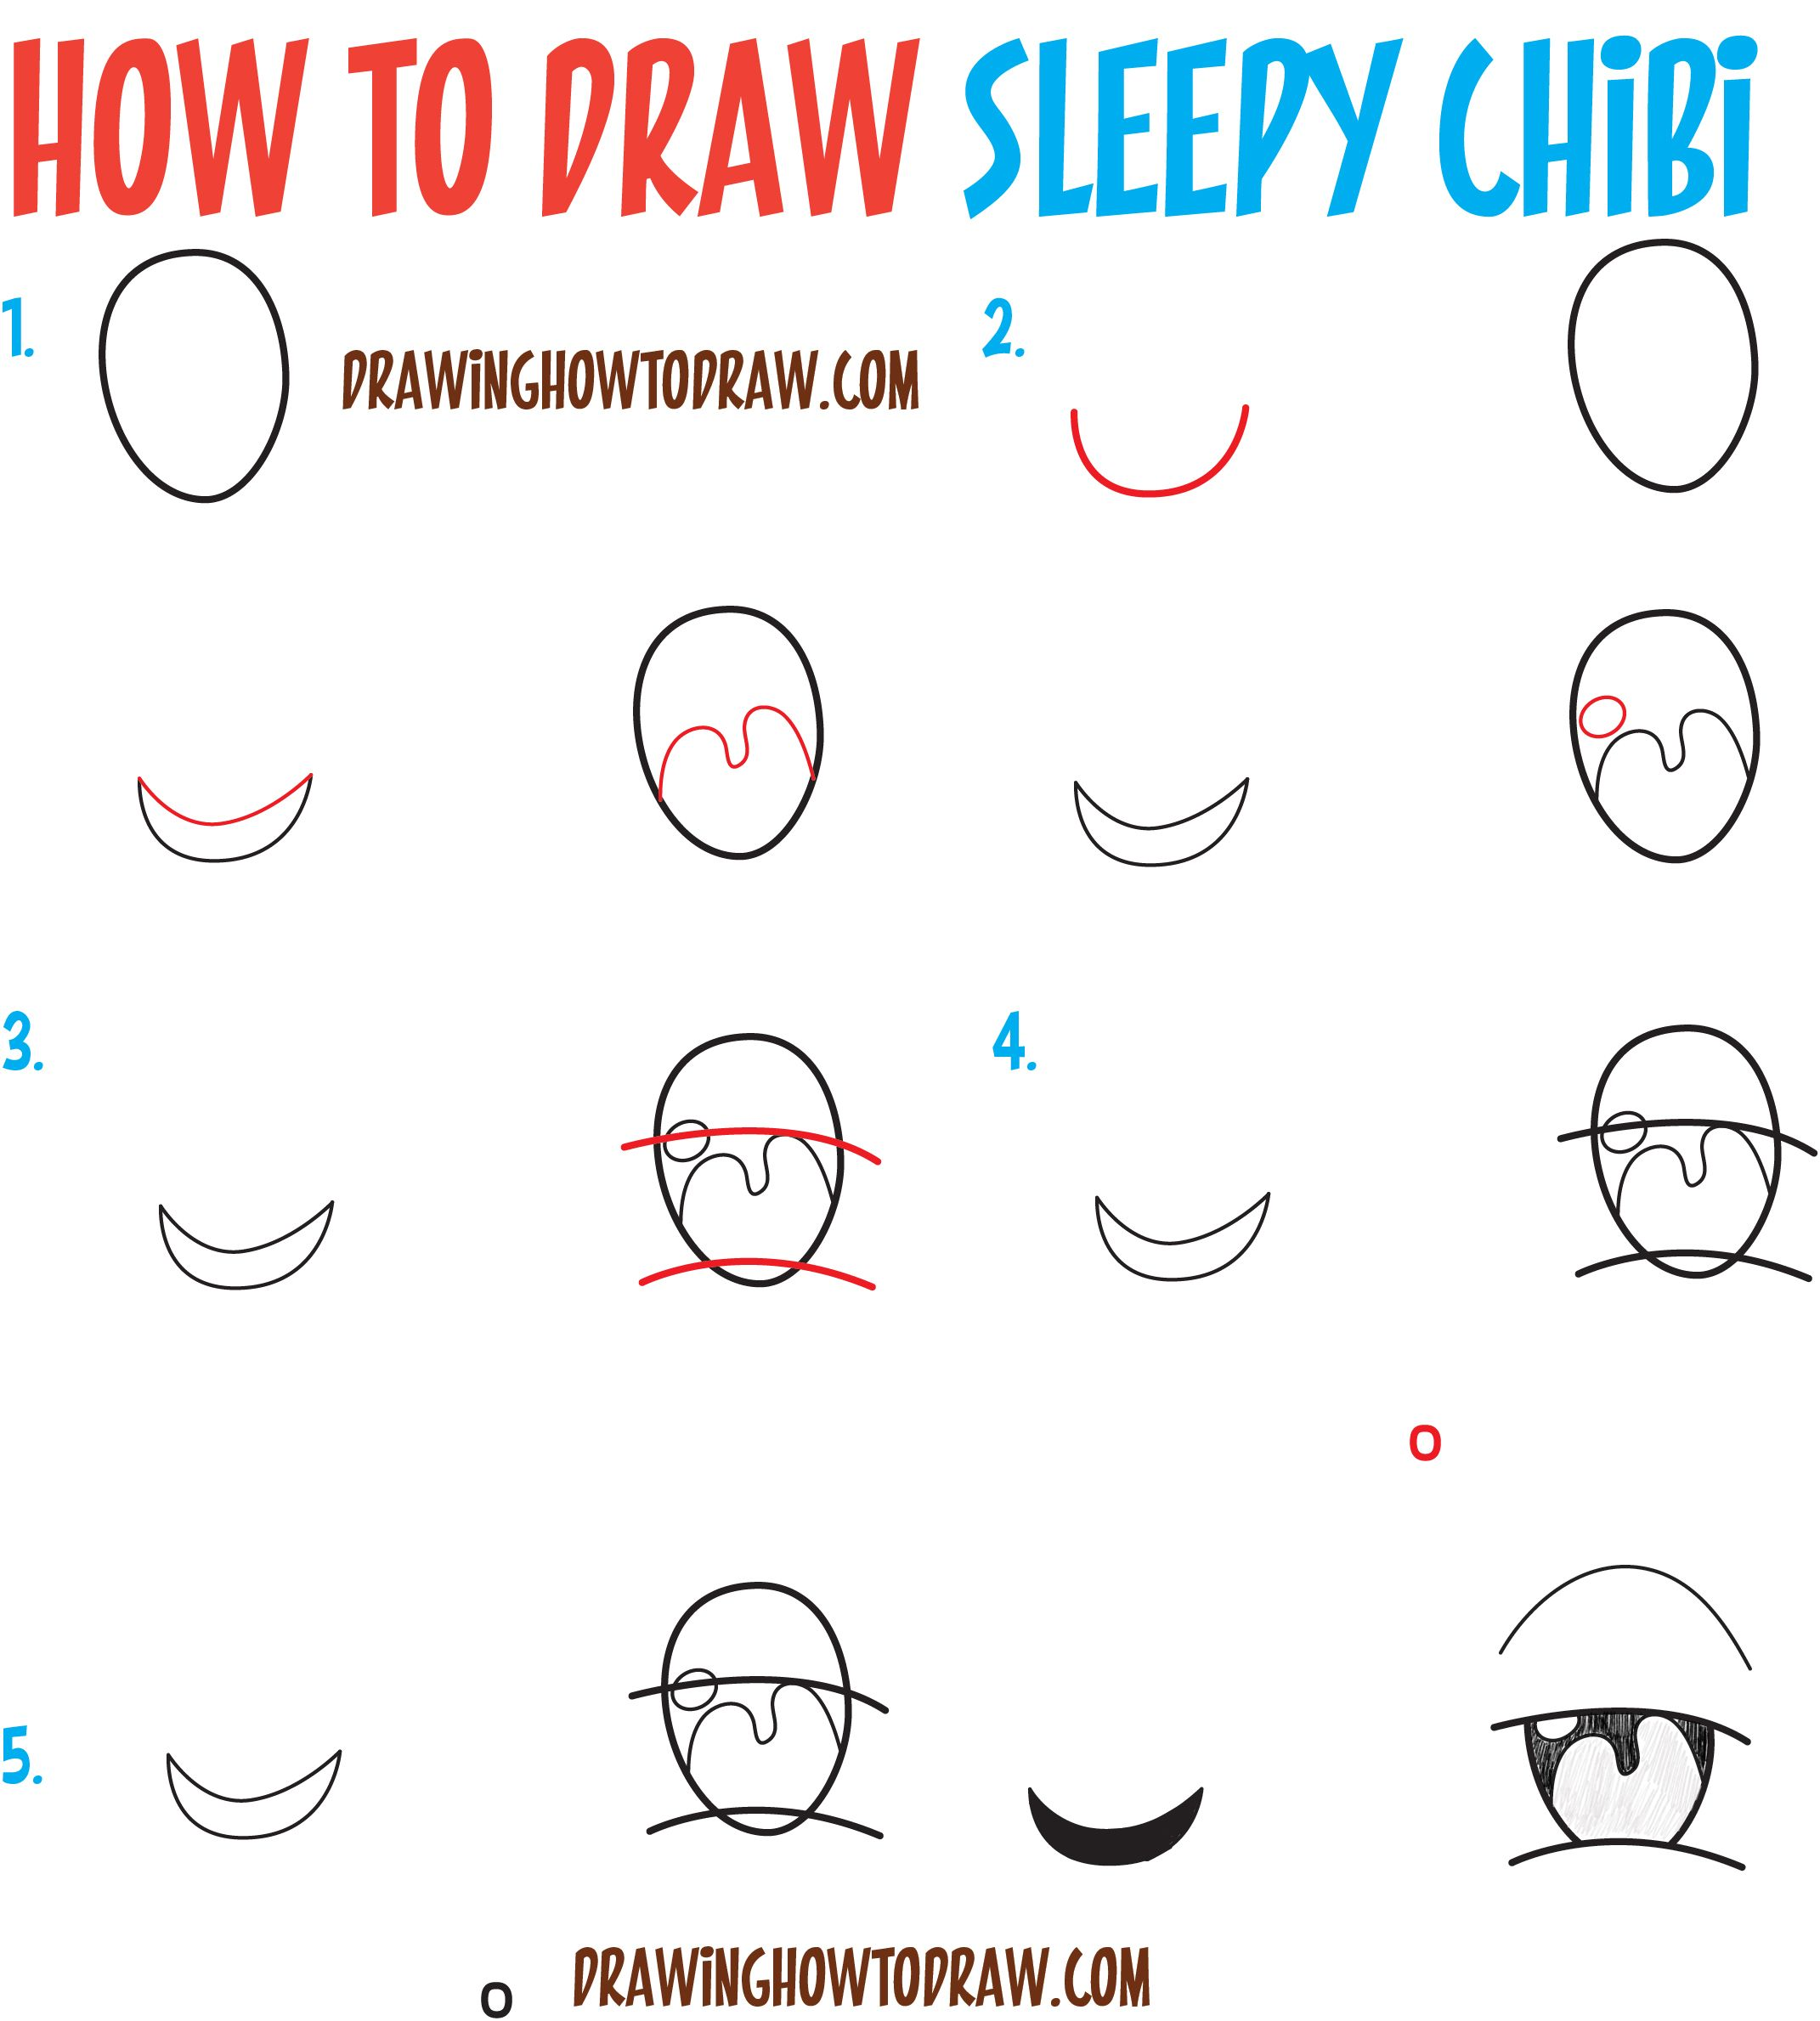 How to Draw Tired / Sleepy / Exhausted Chibi Expressions